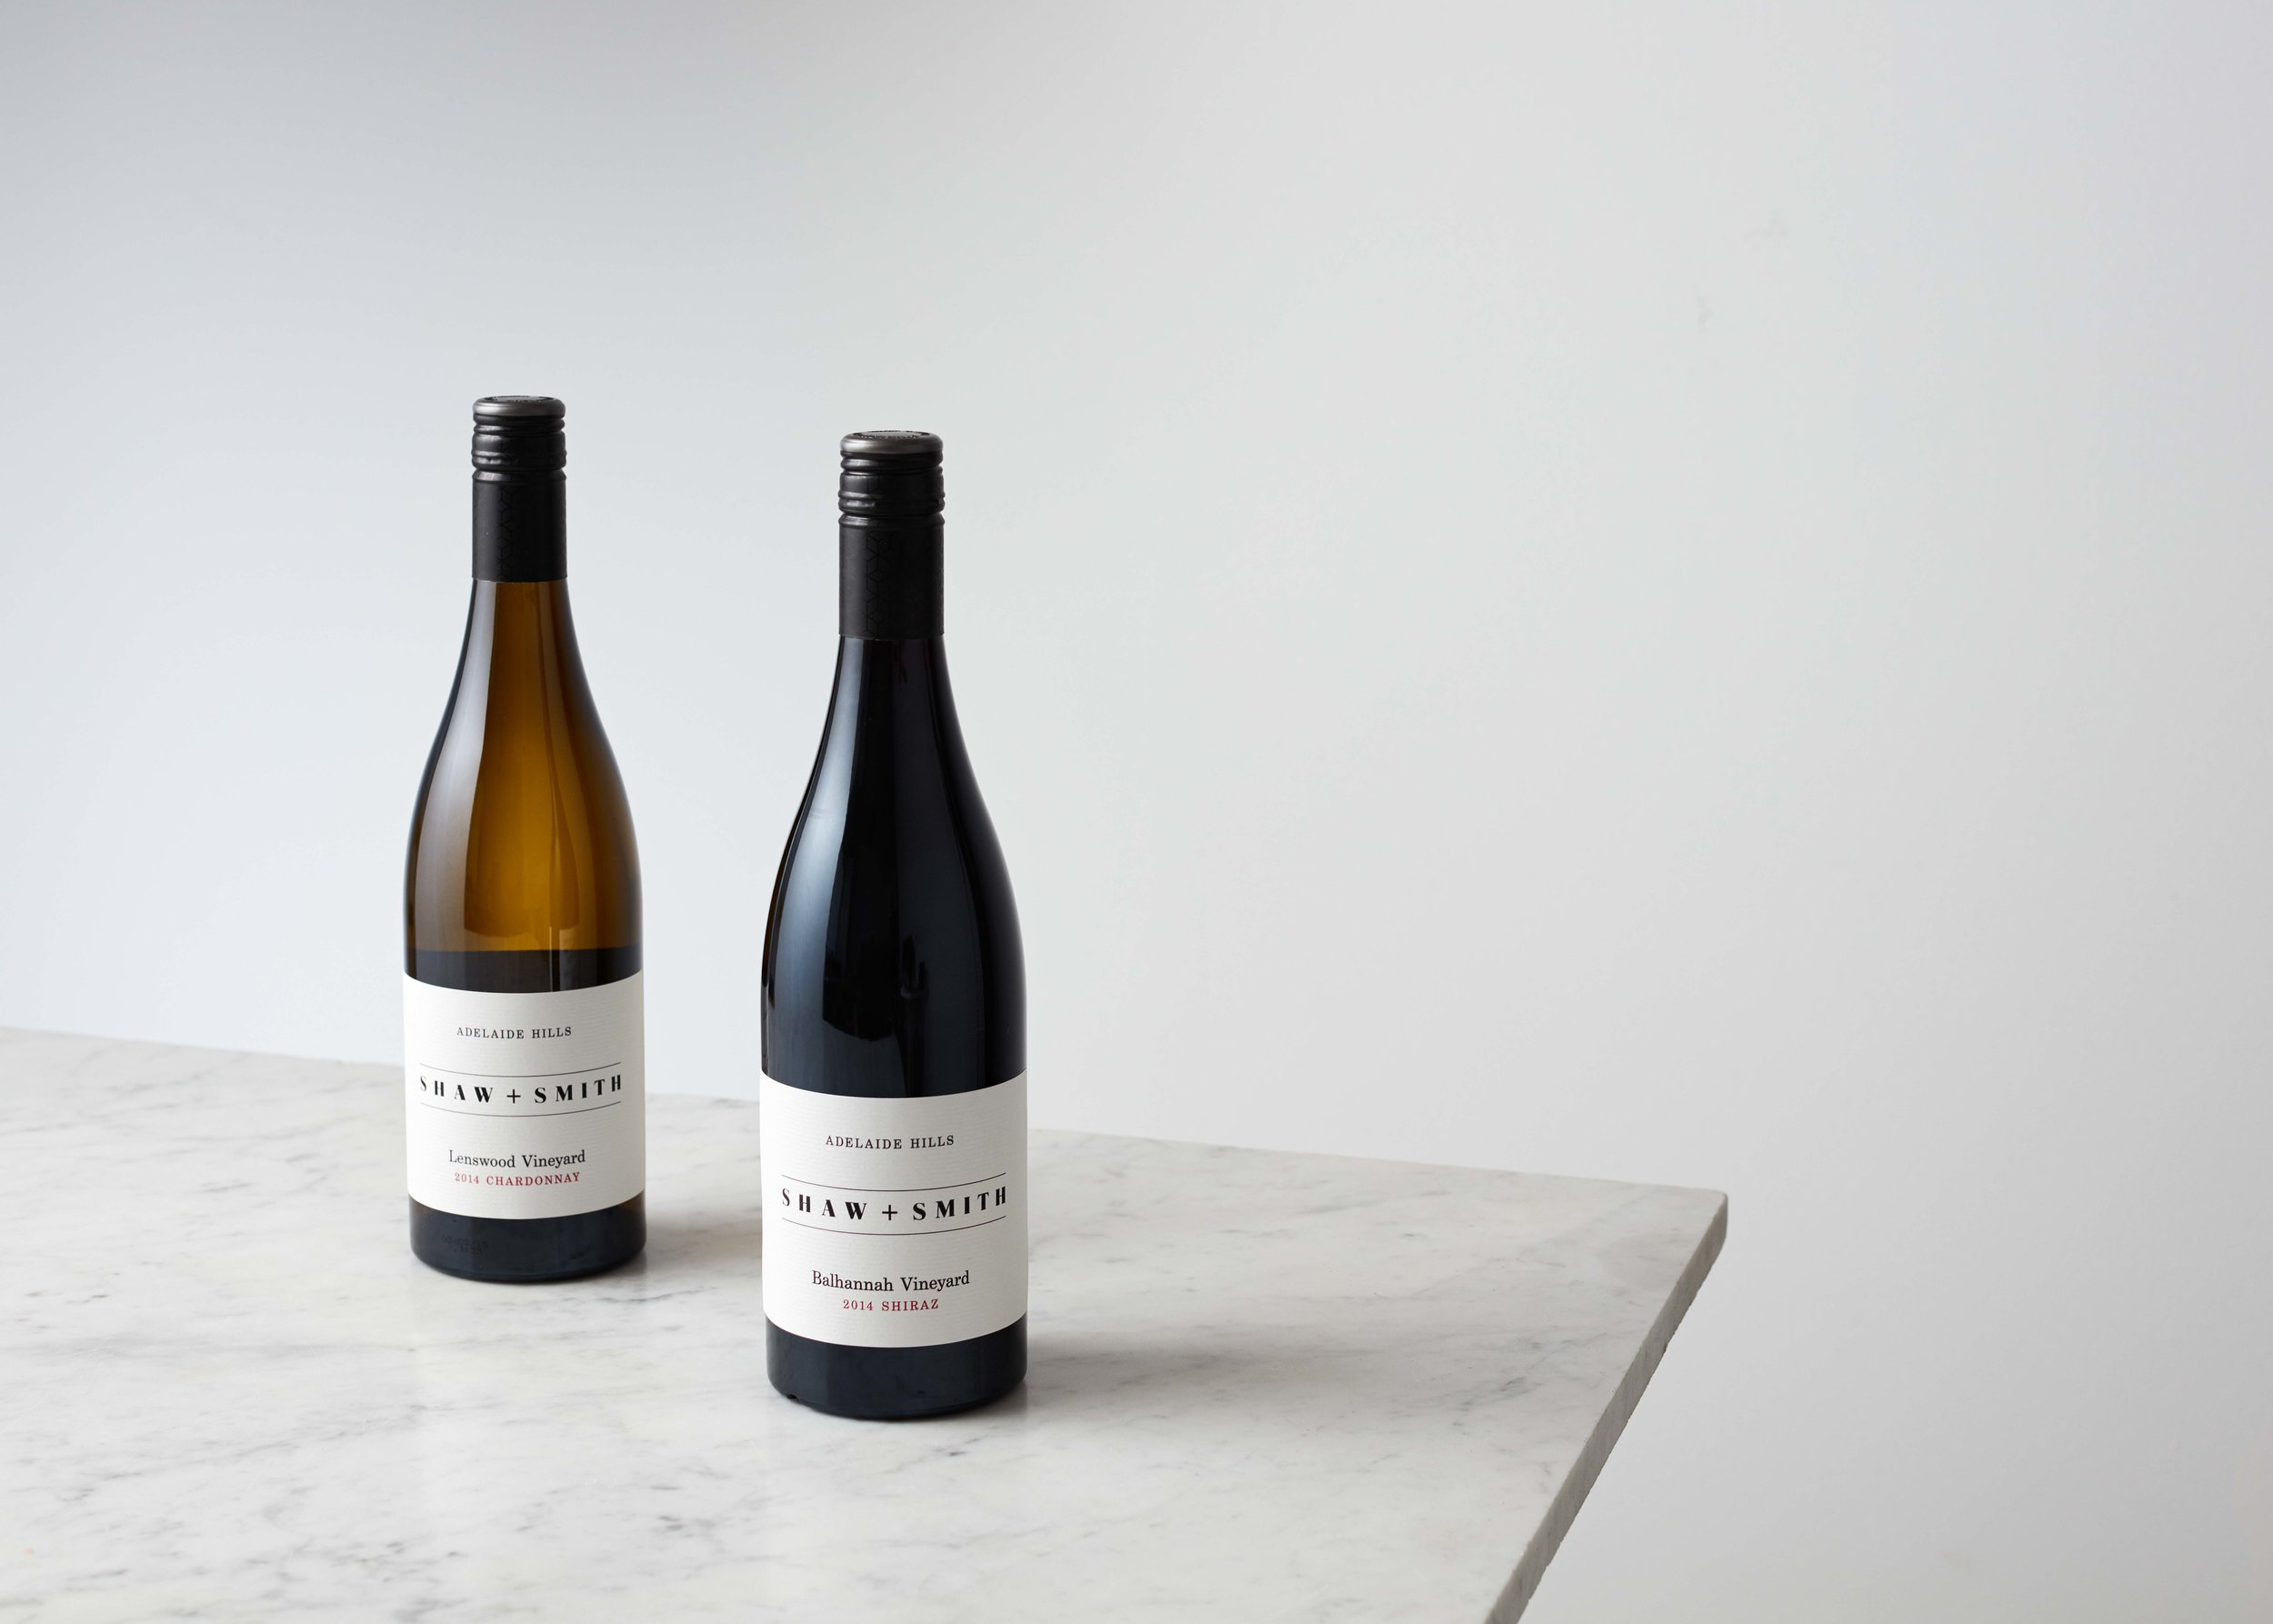 The unique cool climate of the Adelaide Hills lends itself to the growing of grapes with a naturally fruity aroma and a refined, fermented taste.